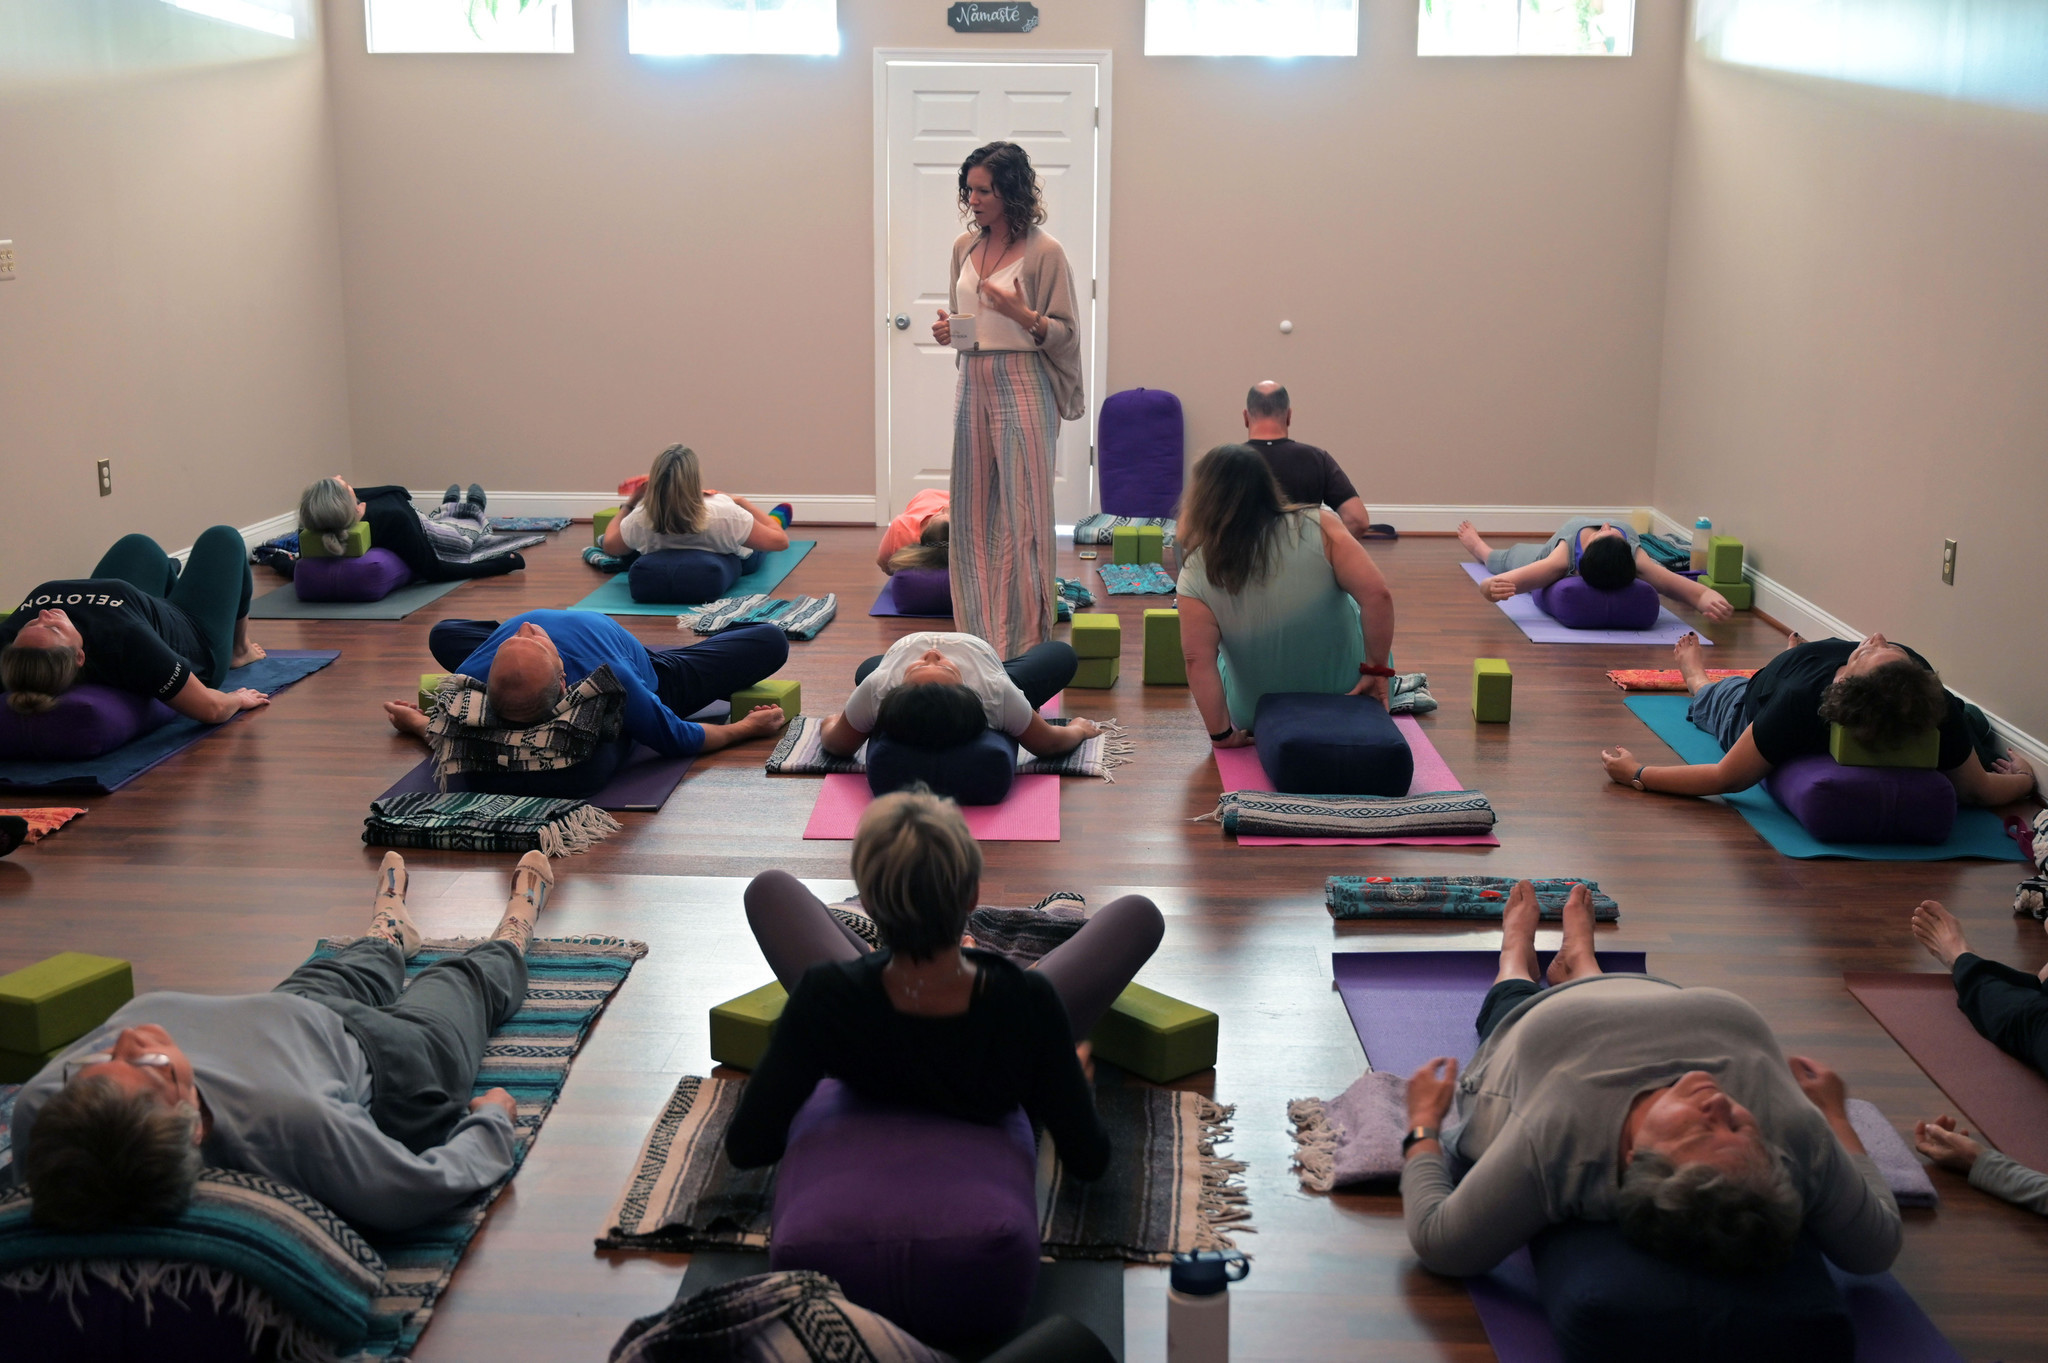 Leave Your Lululemon At Home This Fulton Yoga Studio Shifts Focus From Exercise To Self Care Baltimore Sun